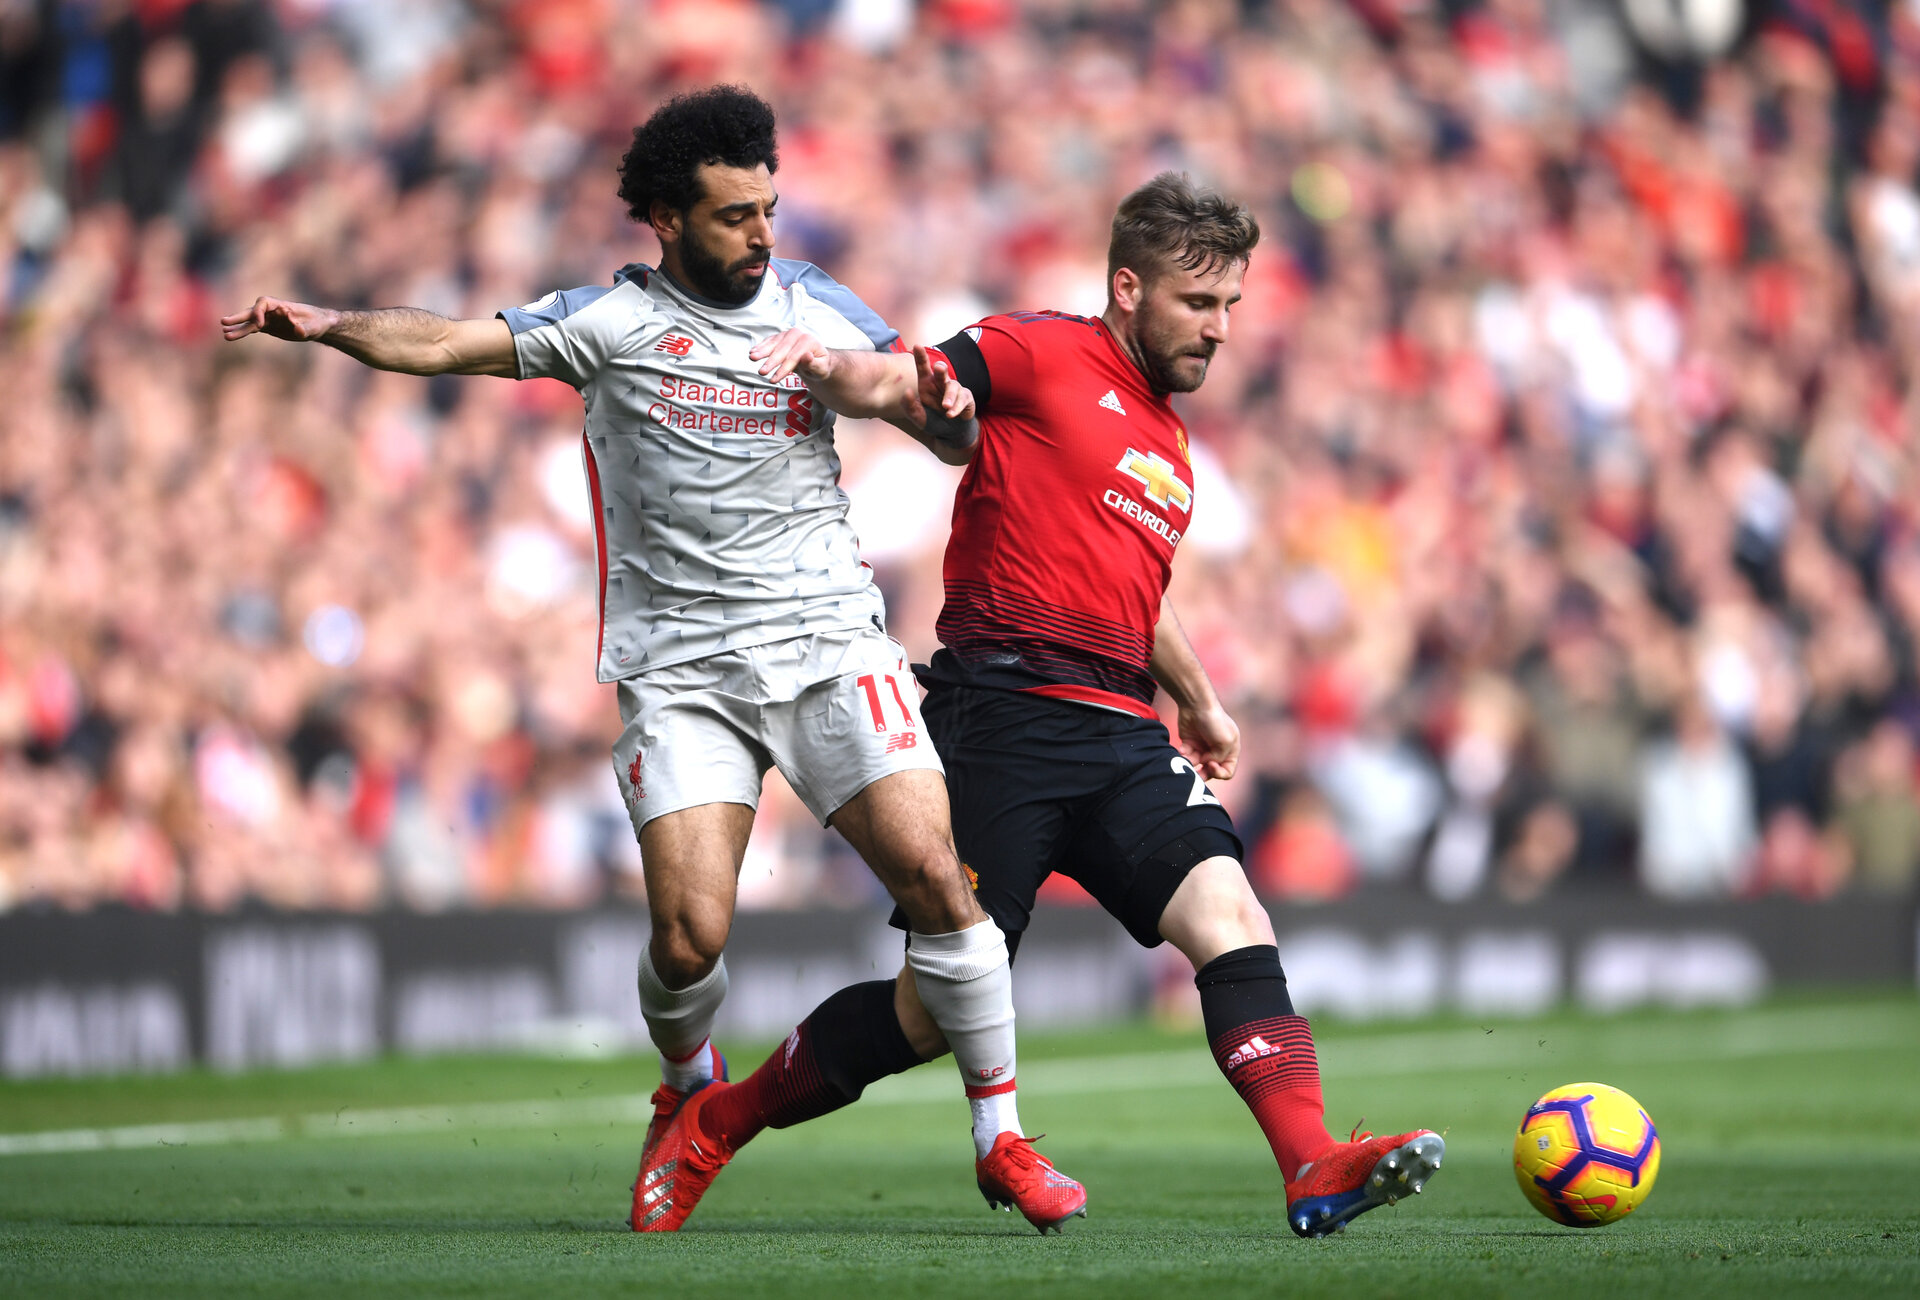 MANCHESTER, ENGLAND - FEBRUARY 24:  Luke Shaw of Manchester United battles for possession with Mohamed Salah of Liverpool during the Premier League match between Manchester United and Liverpool FC at Old Trafford on February 24, 2019 in Manchester, United Kingdom.  (Photo by Laurence Griffiths/Getty Images)